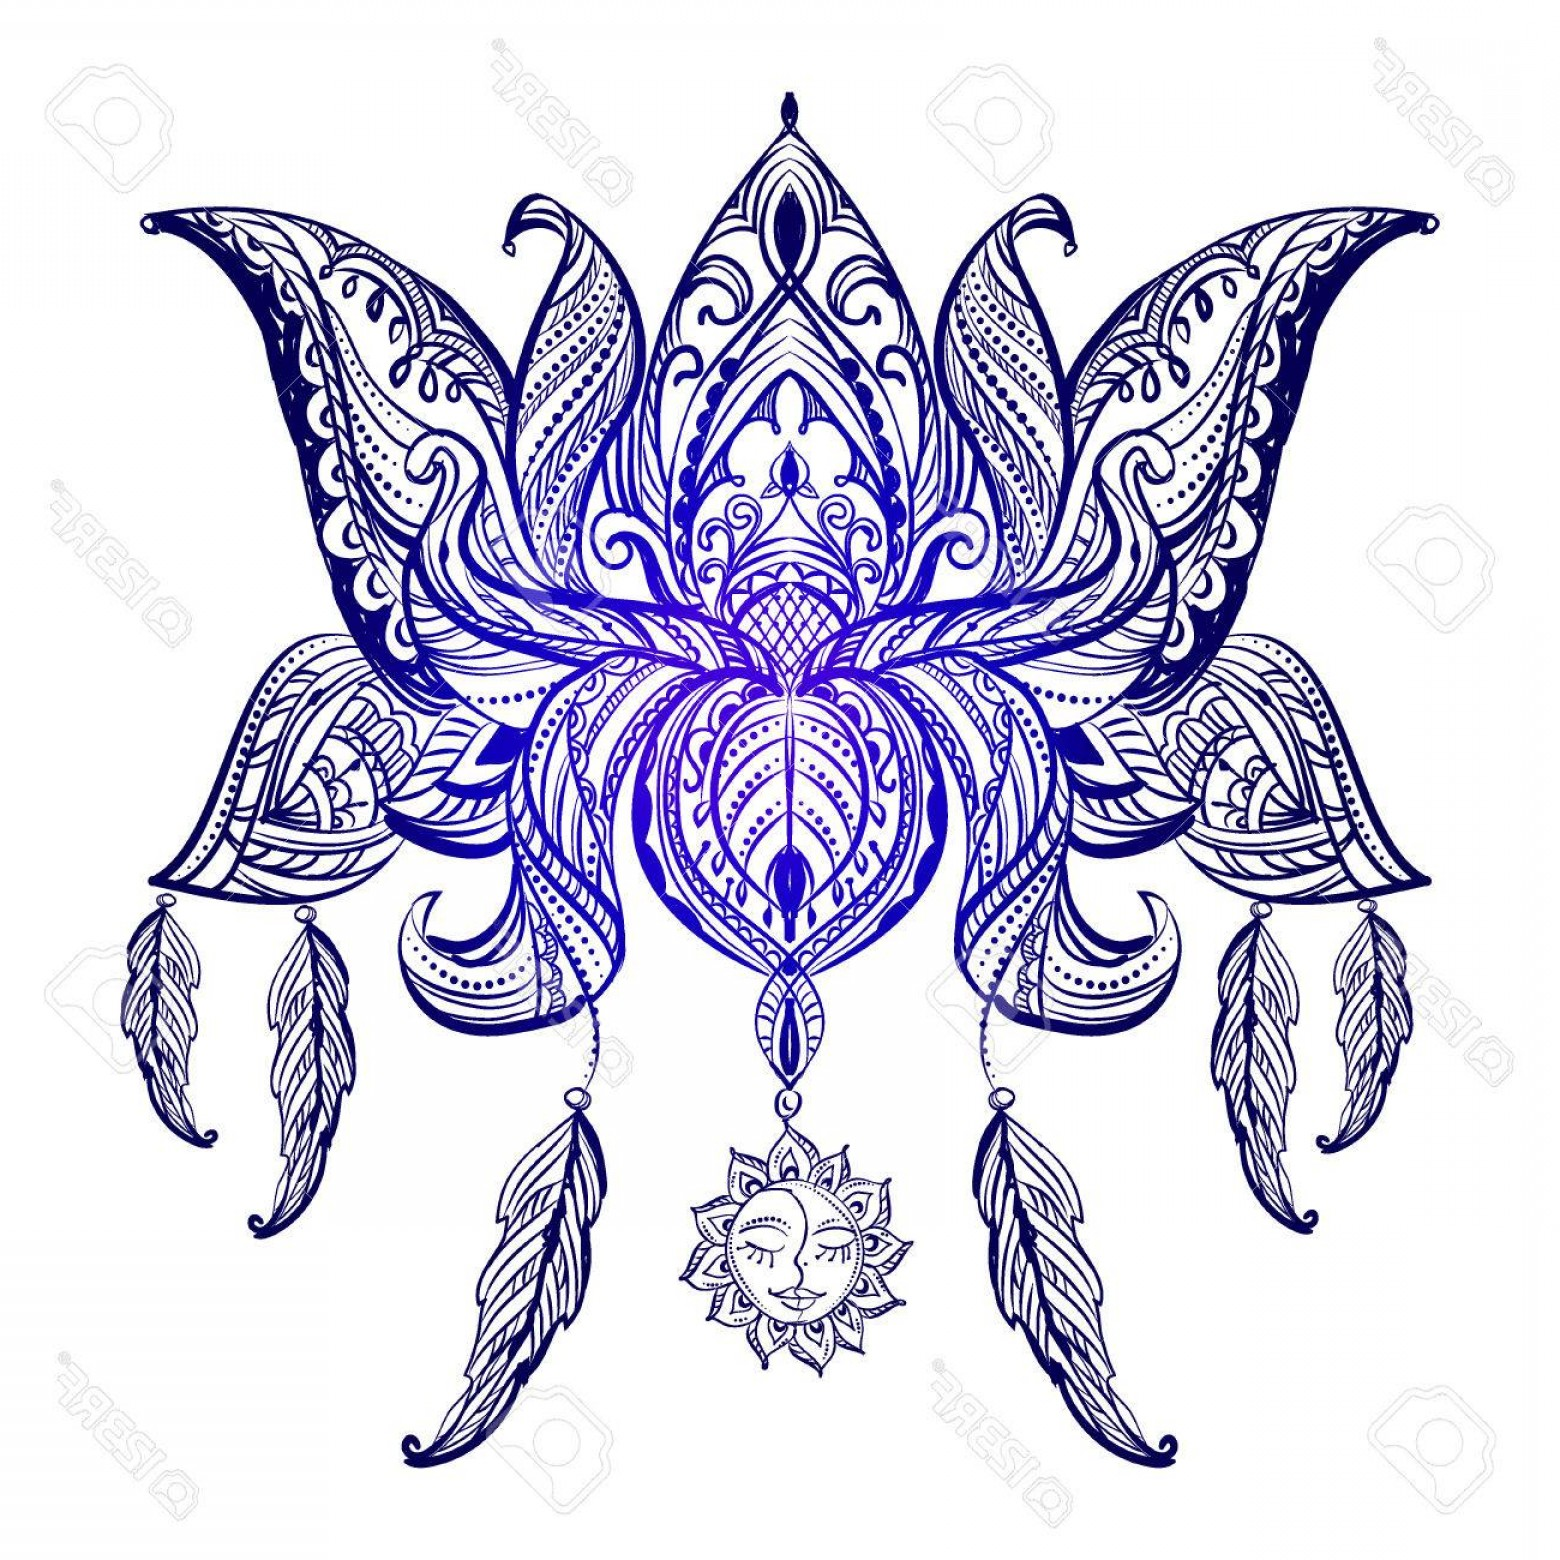 Vector Art Henna: Photostock Vector Vector Isolated Ornamental Lotus Flower Ethnic Art Henna Tattoo Patterned Indian Paisley Hand Drawn